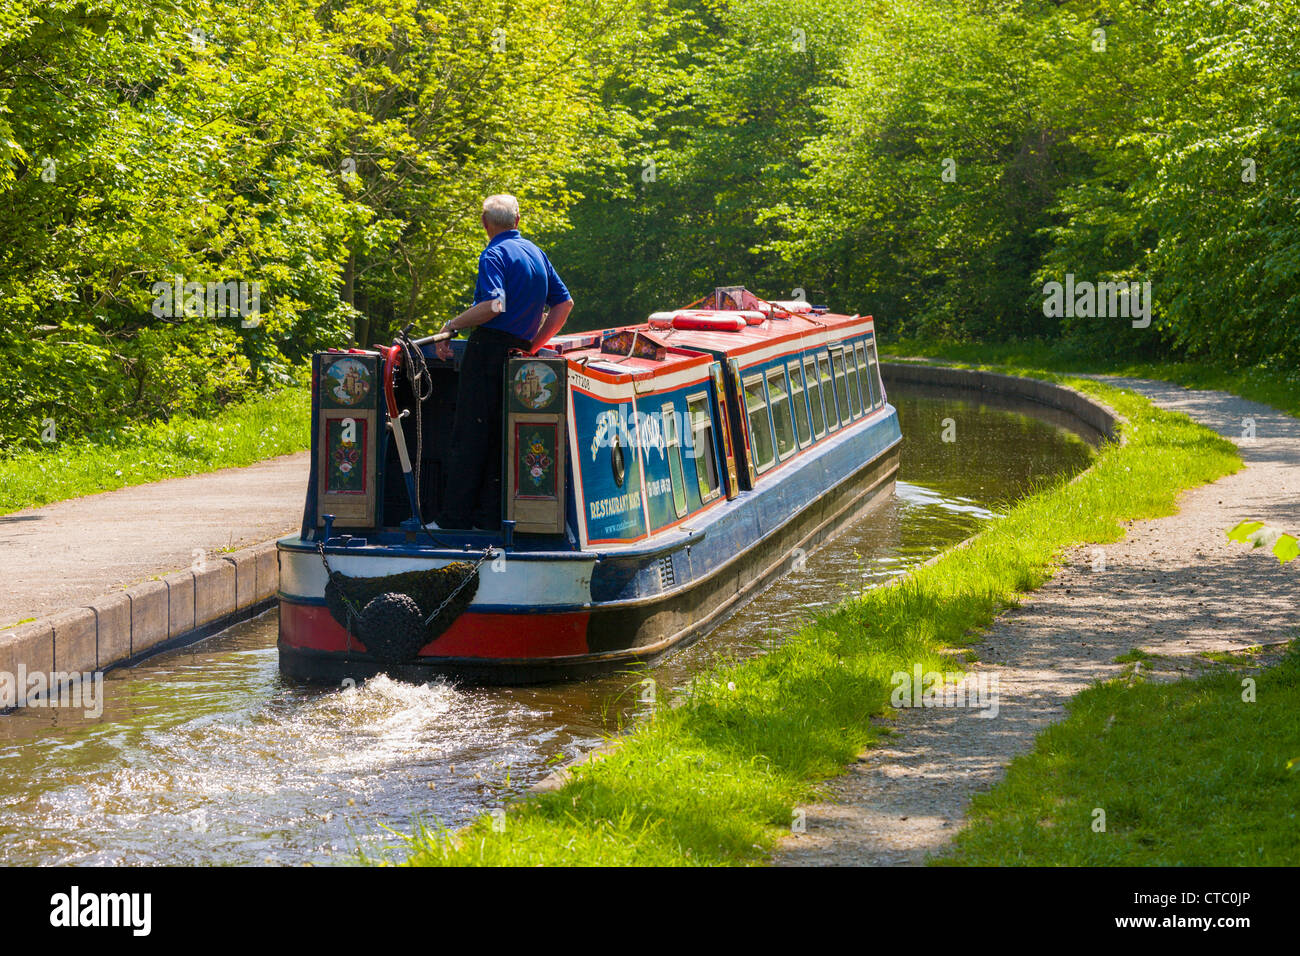 Tourists, canal boat, Trevor, Llangollen, North Wales - Stock Image